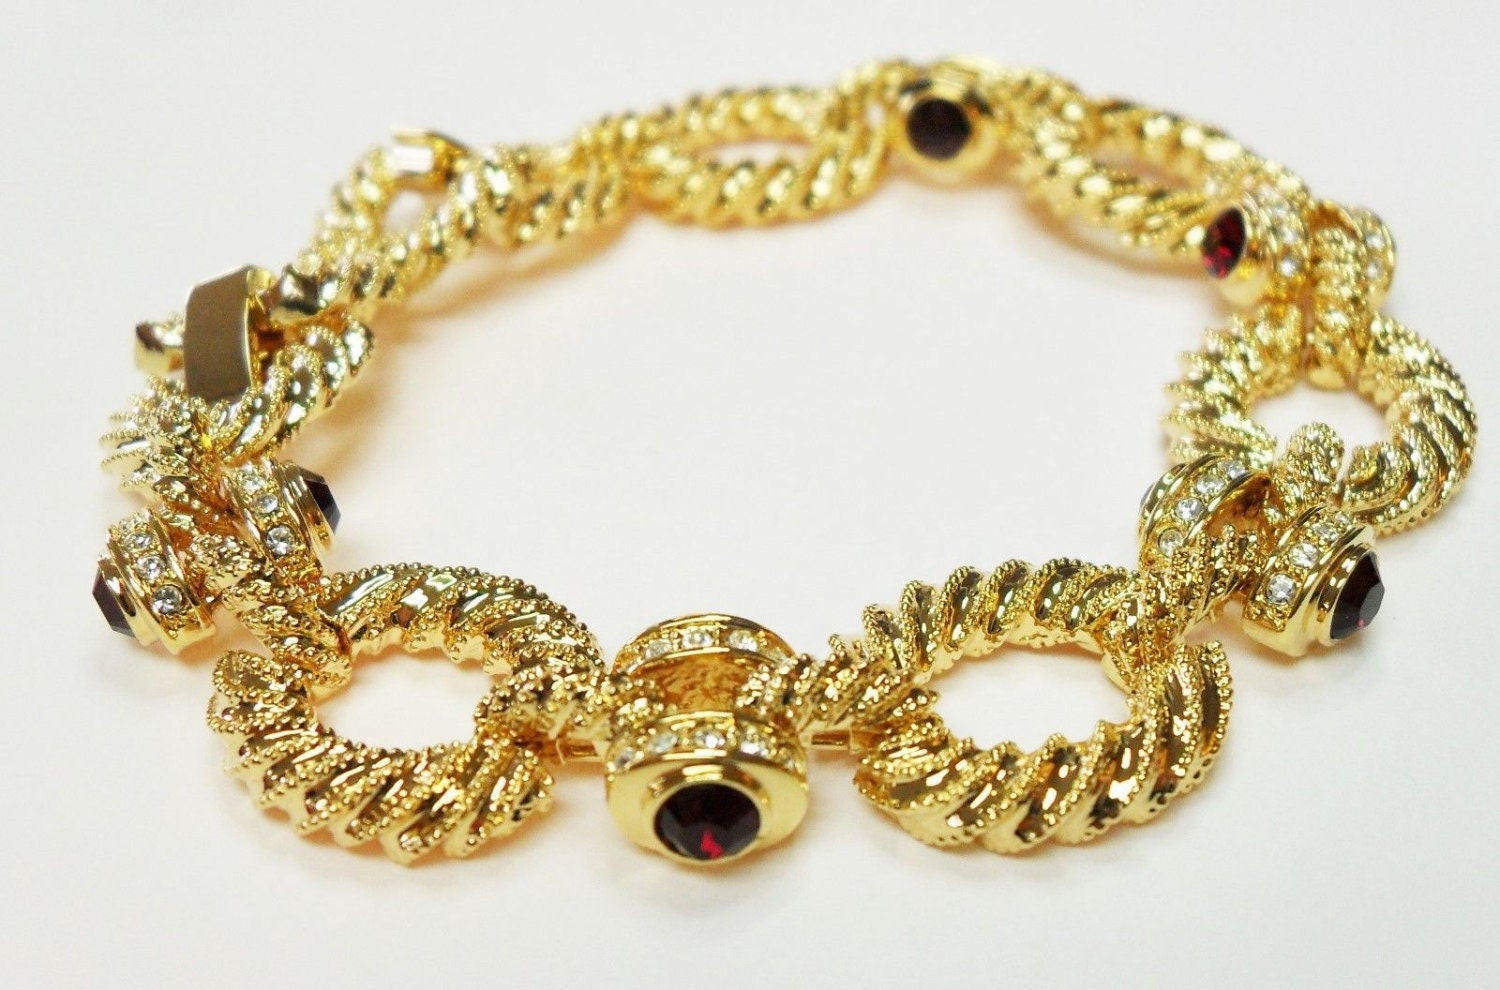 monarch bracelet oro shop jewellery resized bracelets bead collection macrame gold